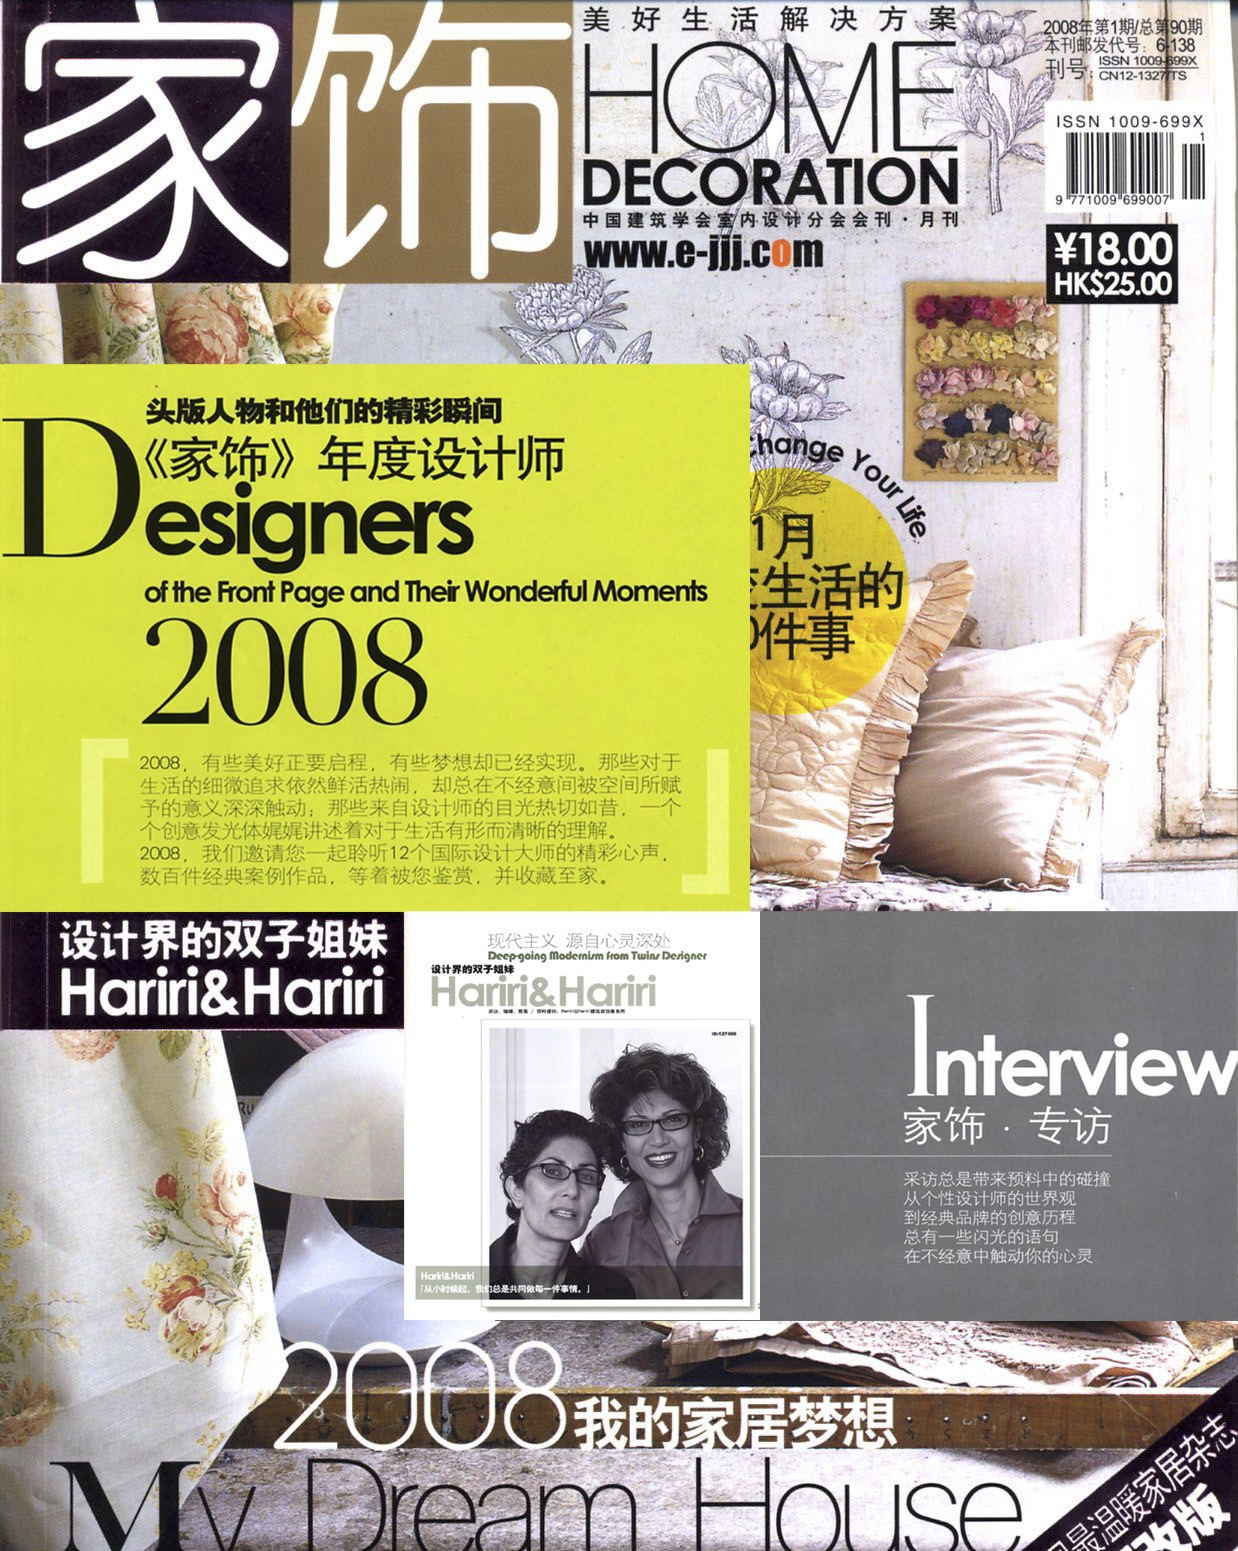 02.08 HOME DECORATION CHINA (GH & MH INTERVIEW)